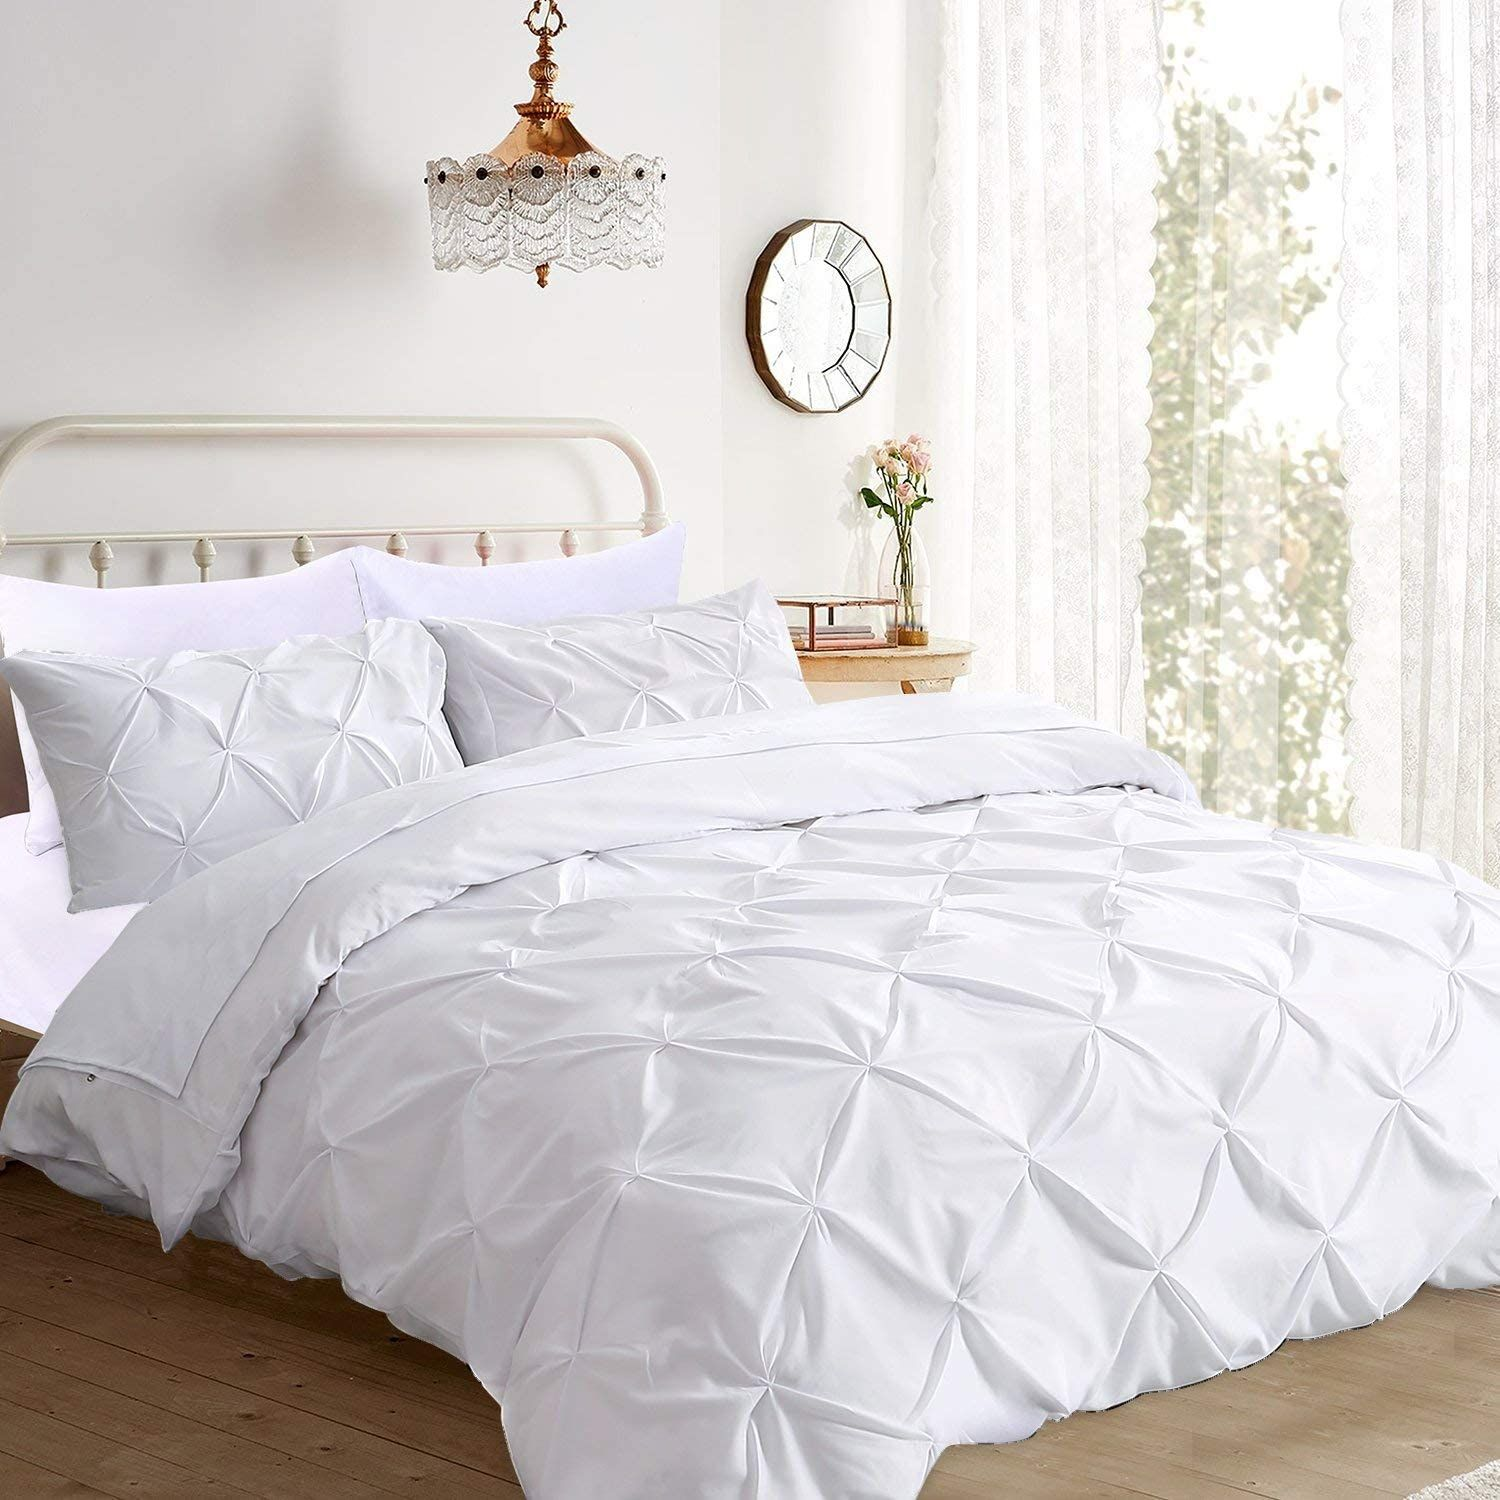 Ucharge Unique Pinch Pleat Pintuck Duvet Cover Set 3 Pieces